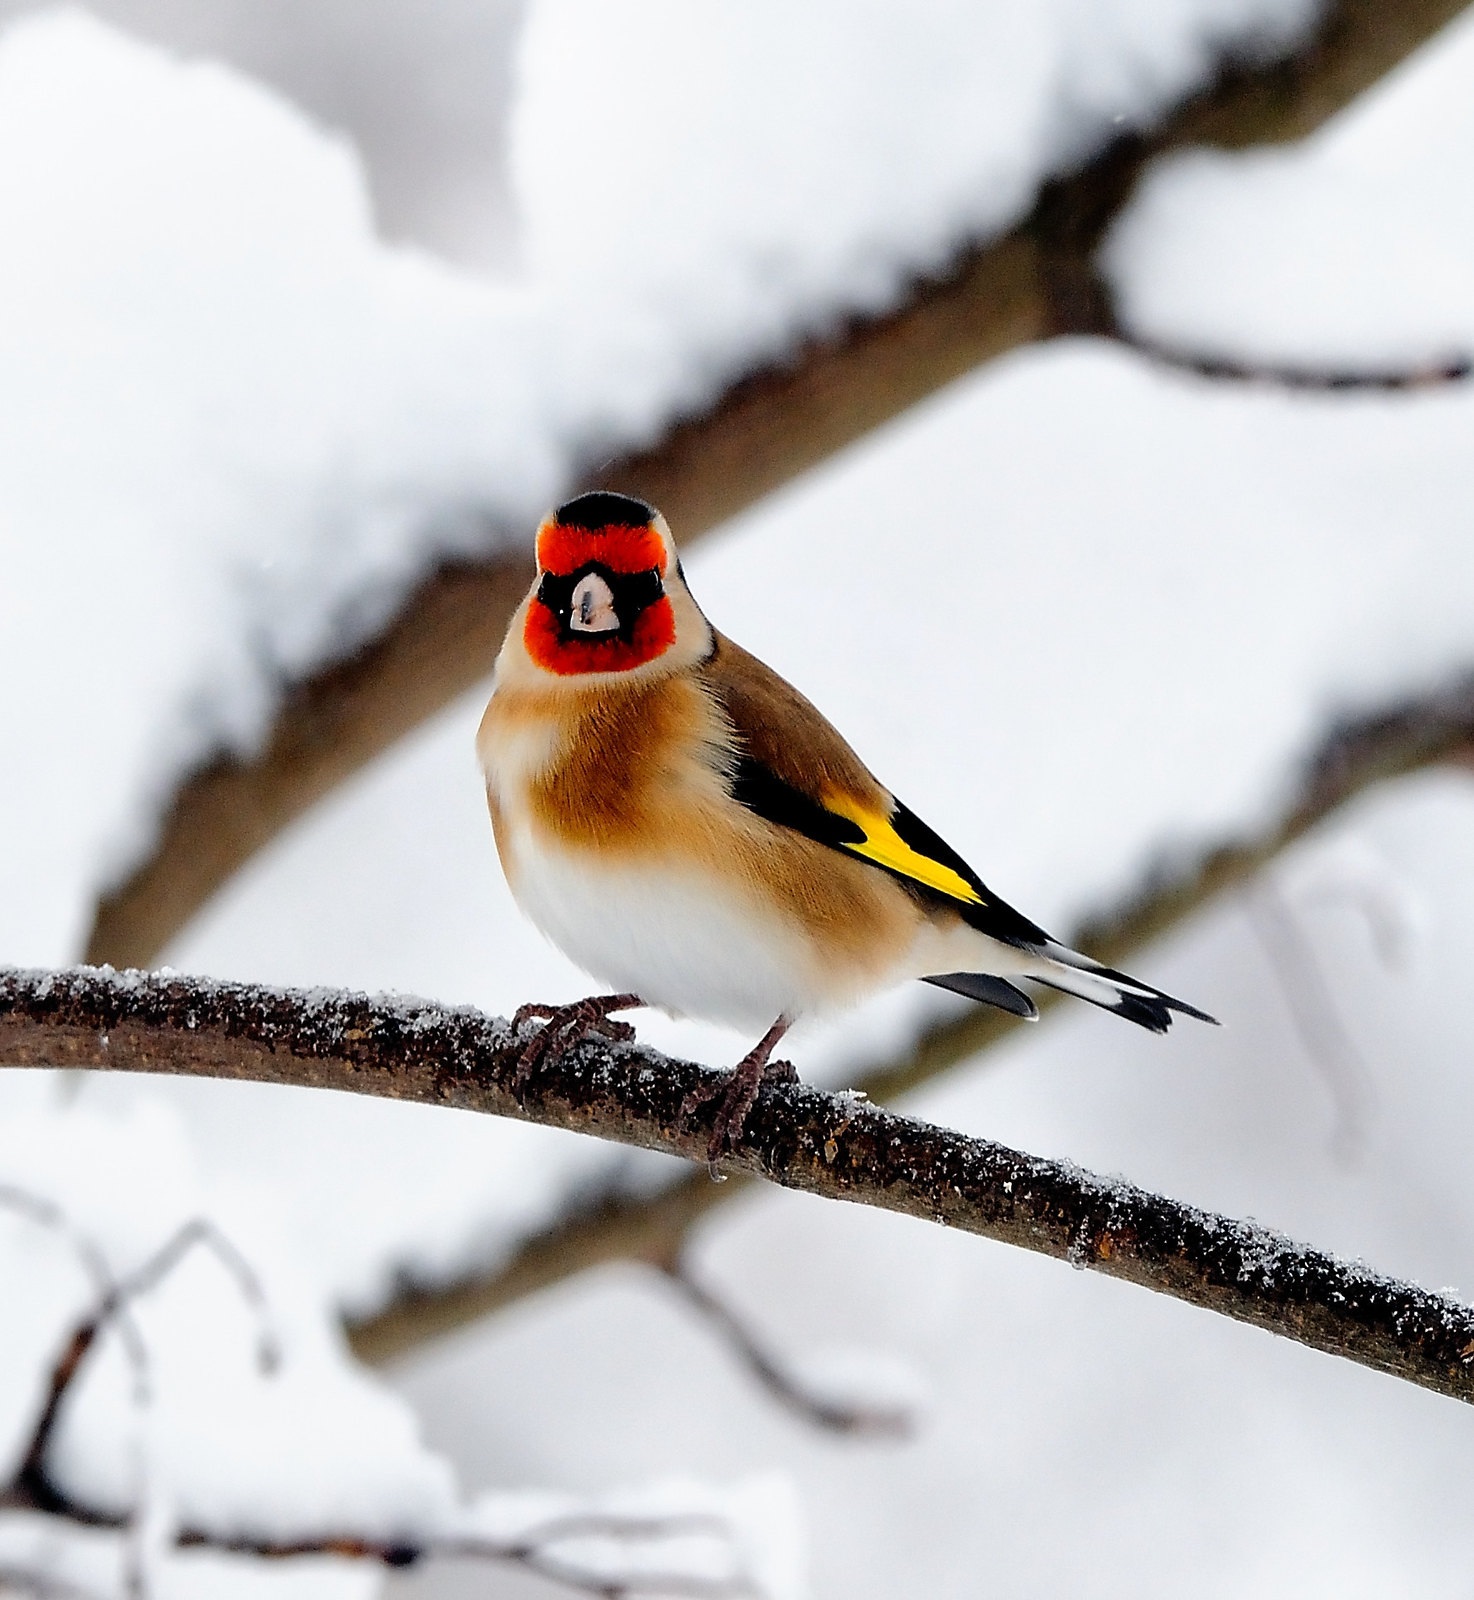 Goldfinch. Credit chapmankj75